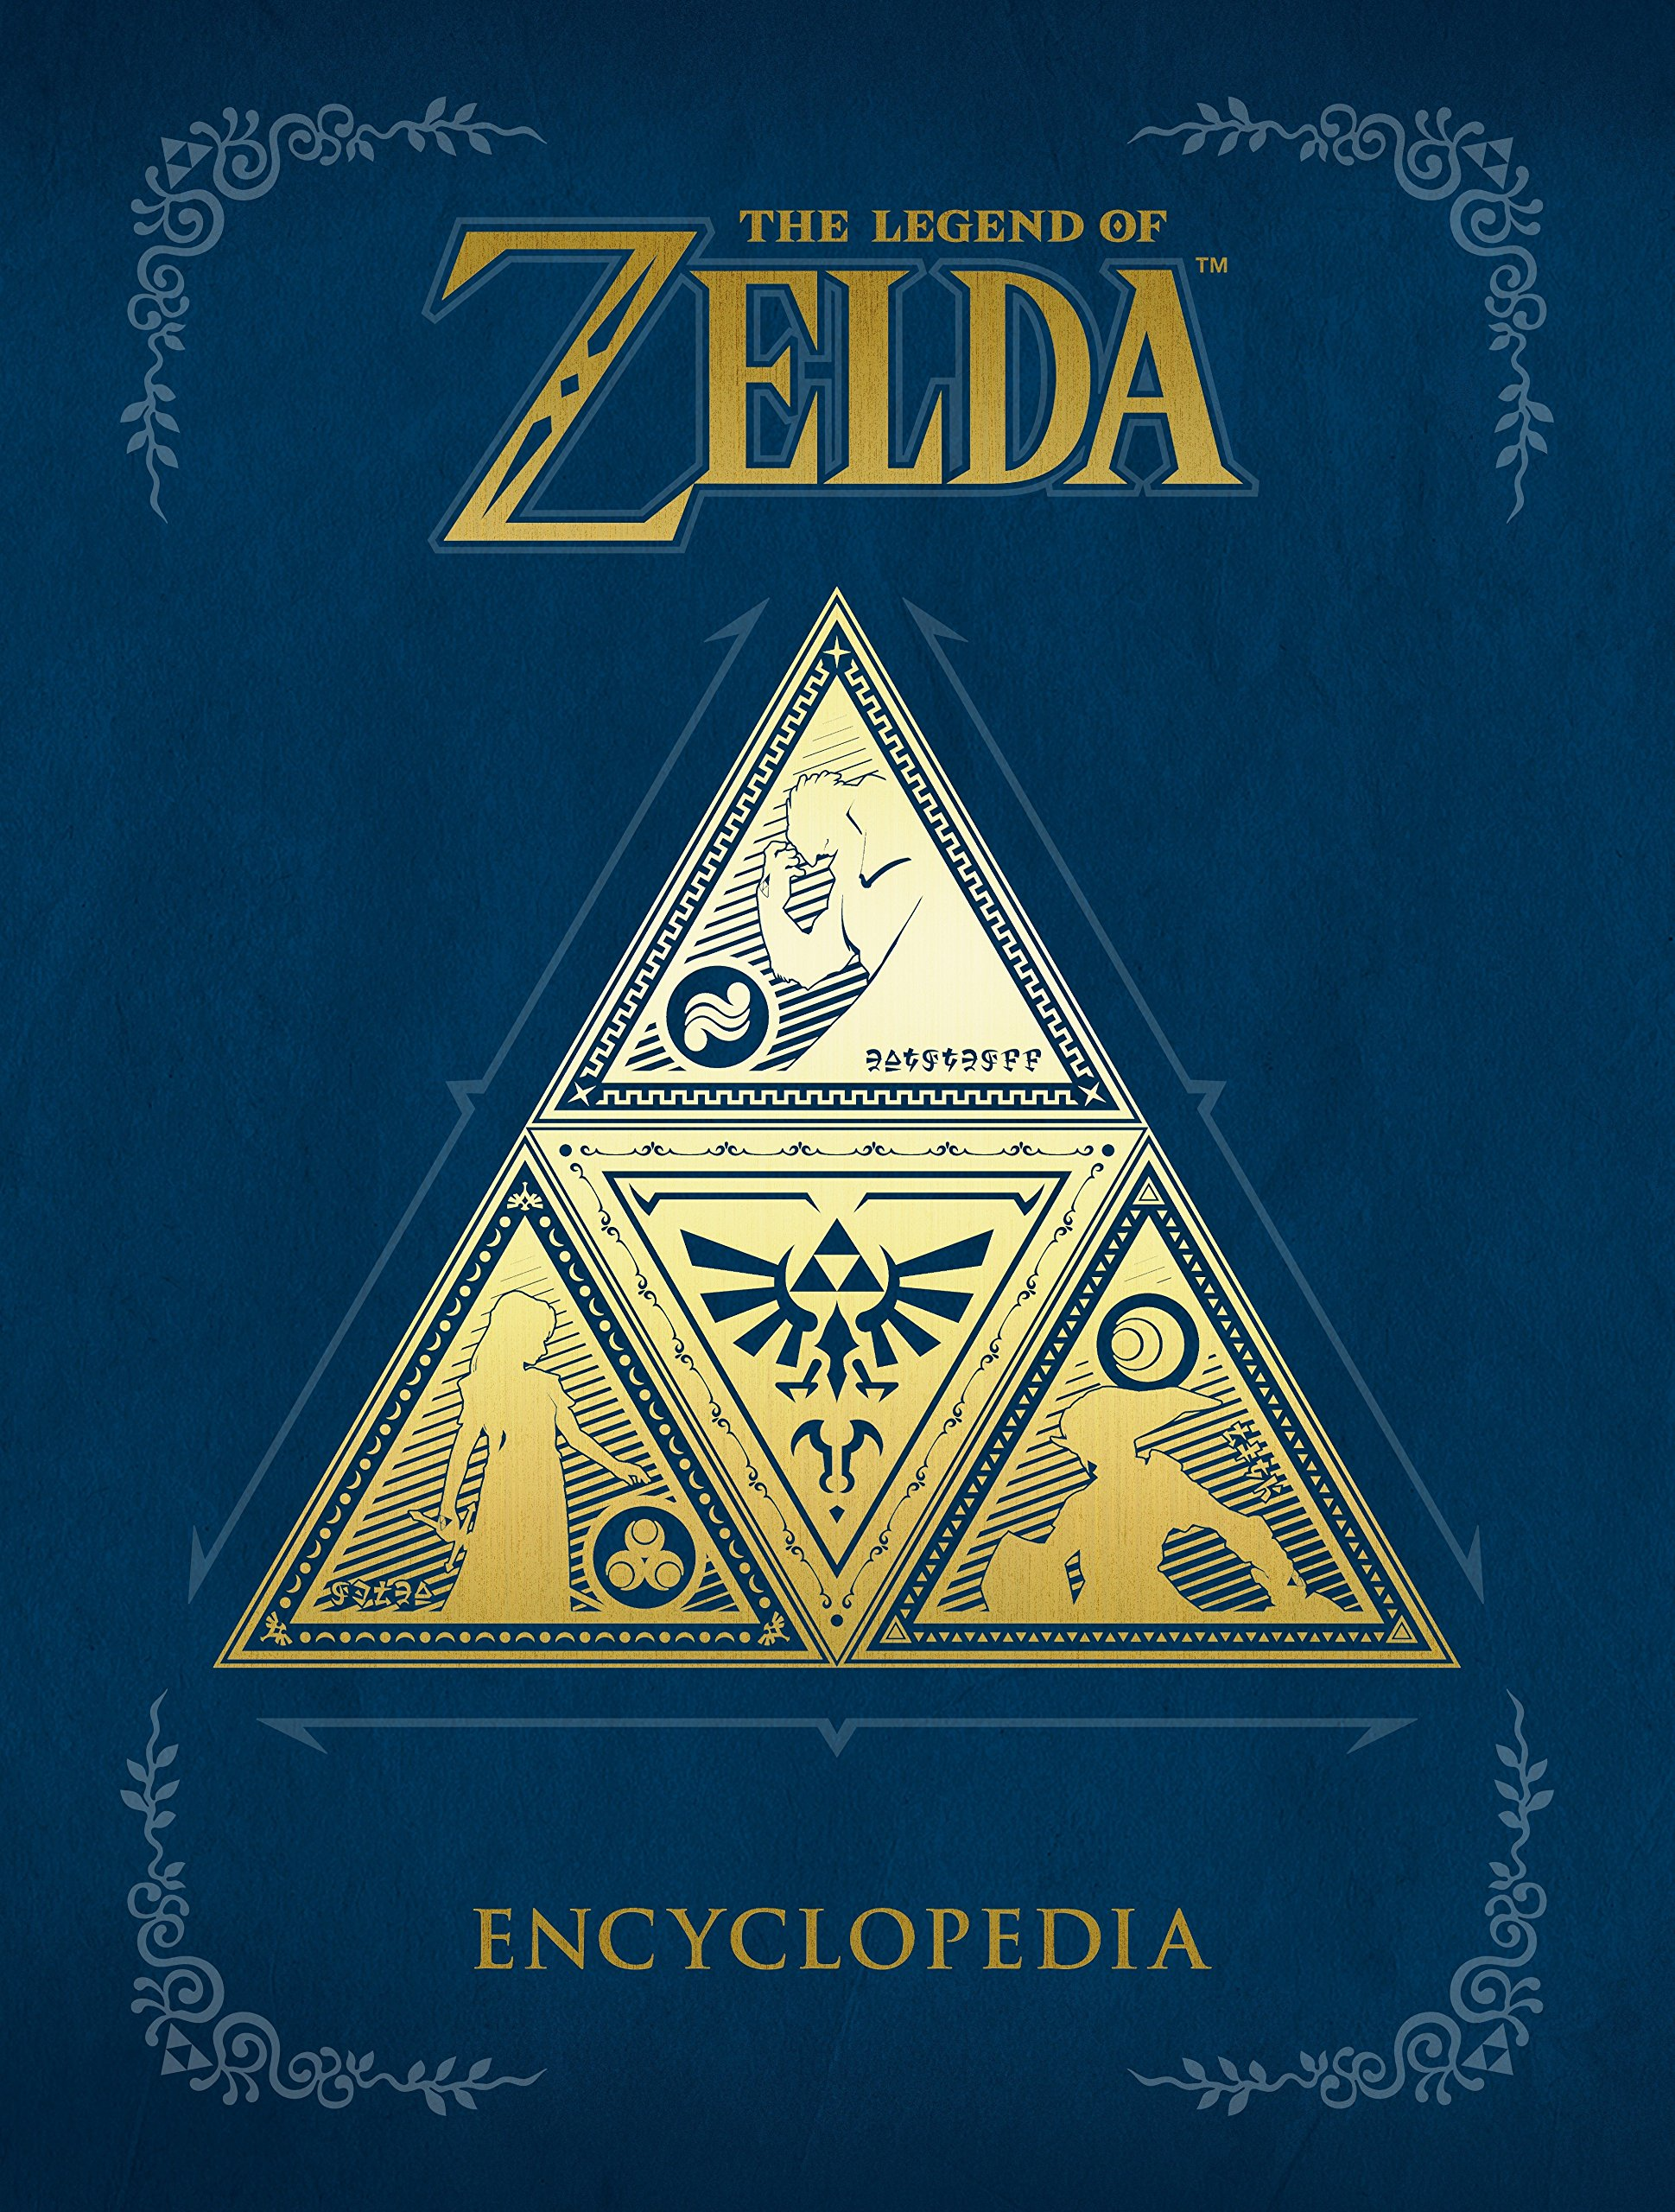 Zelda-encyclopedia-cover.jpg